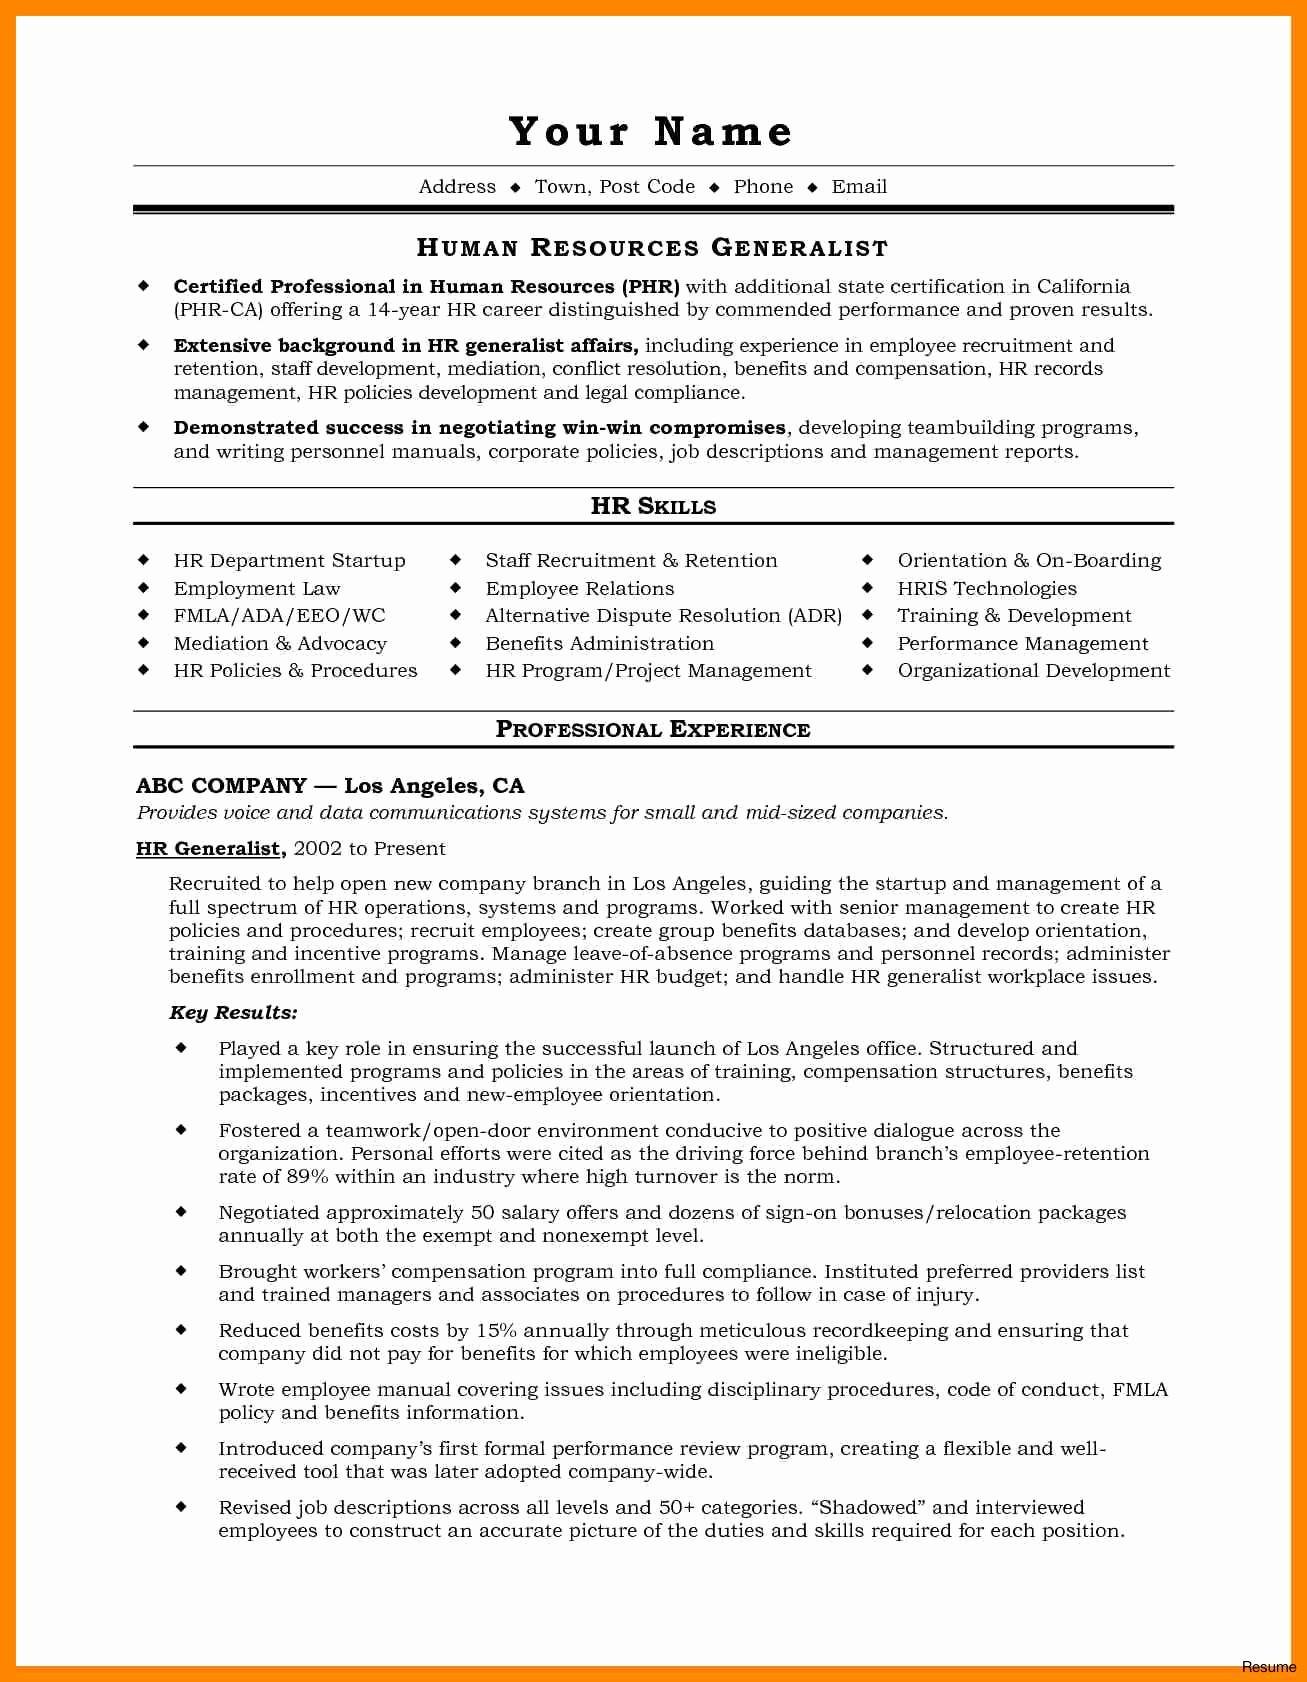 Startup Offer Letter Template - How to Write A Stellar Cover Letter Lovely Email Marketing Resume